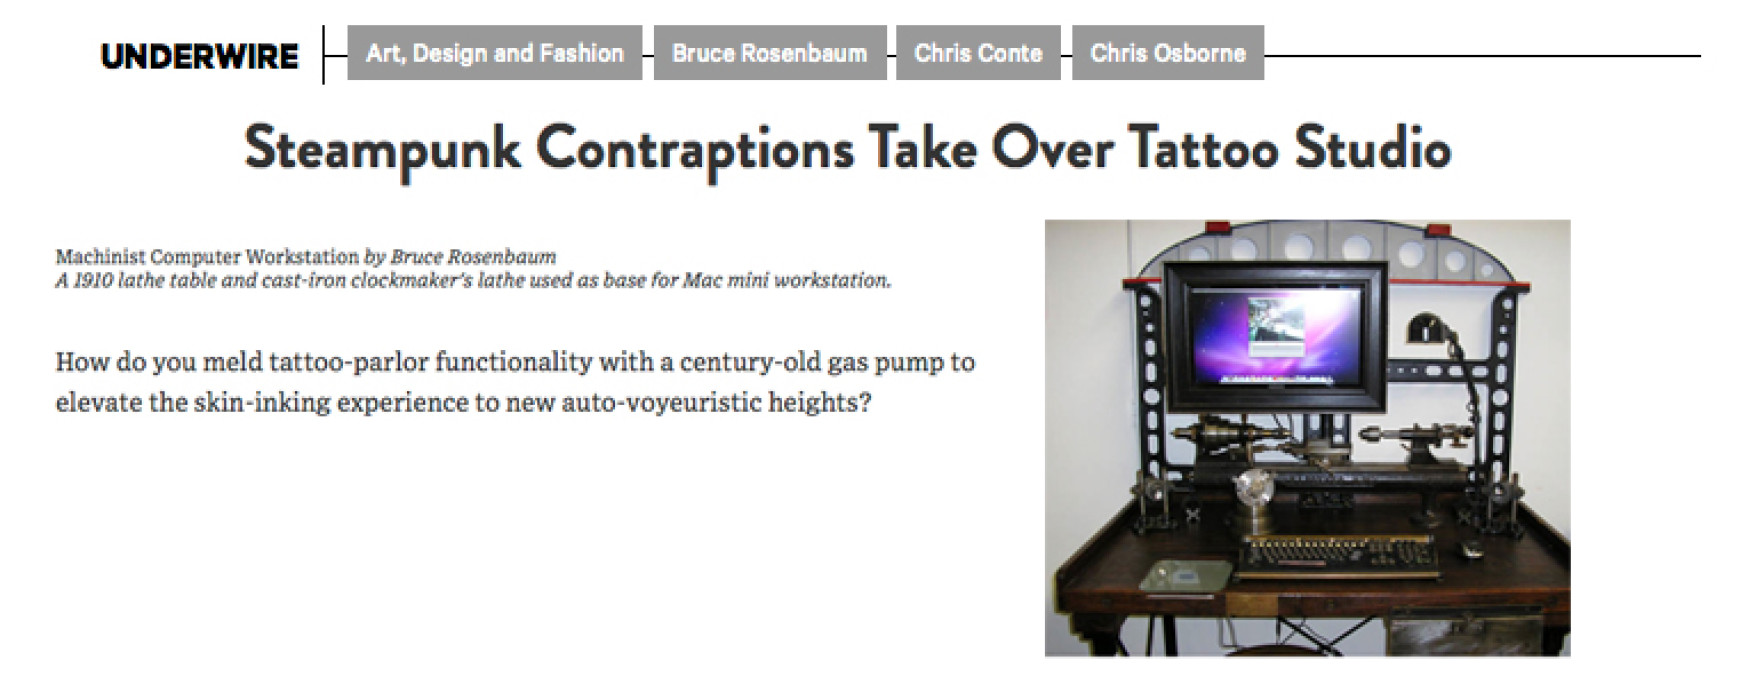 Wired Magazine: Steampunk contraptions take over tattoo studio